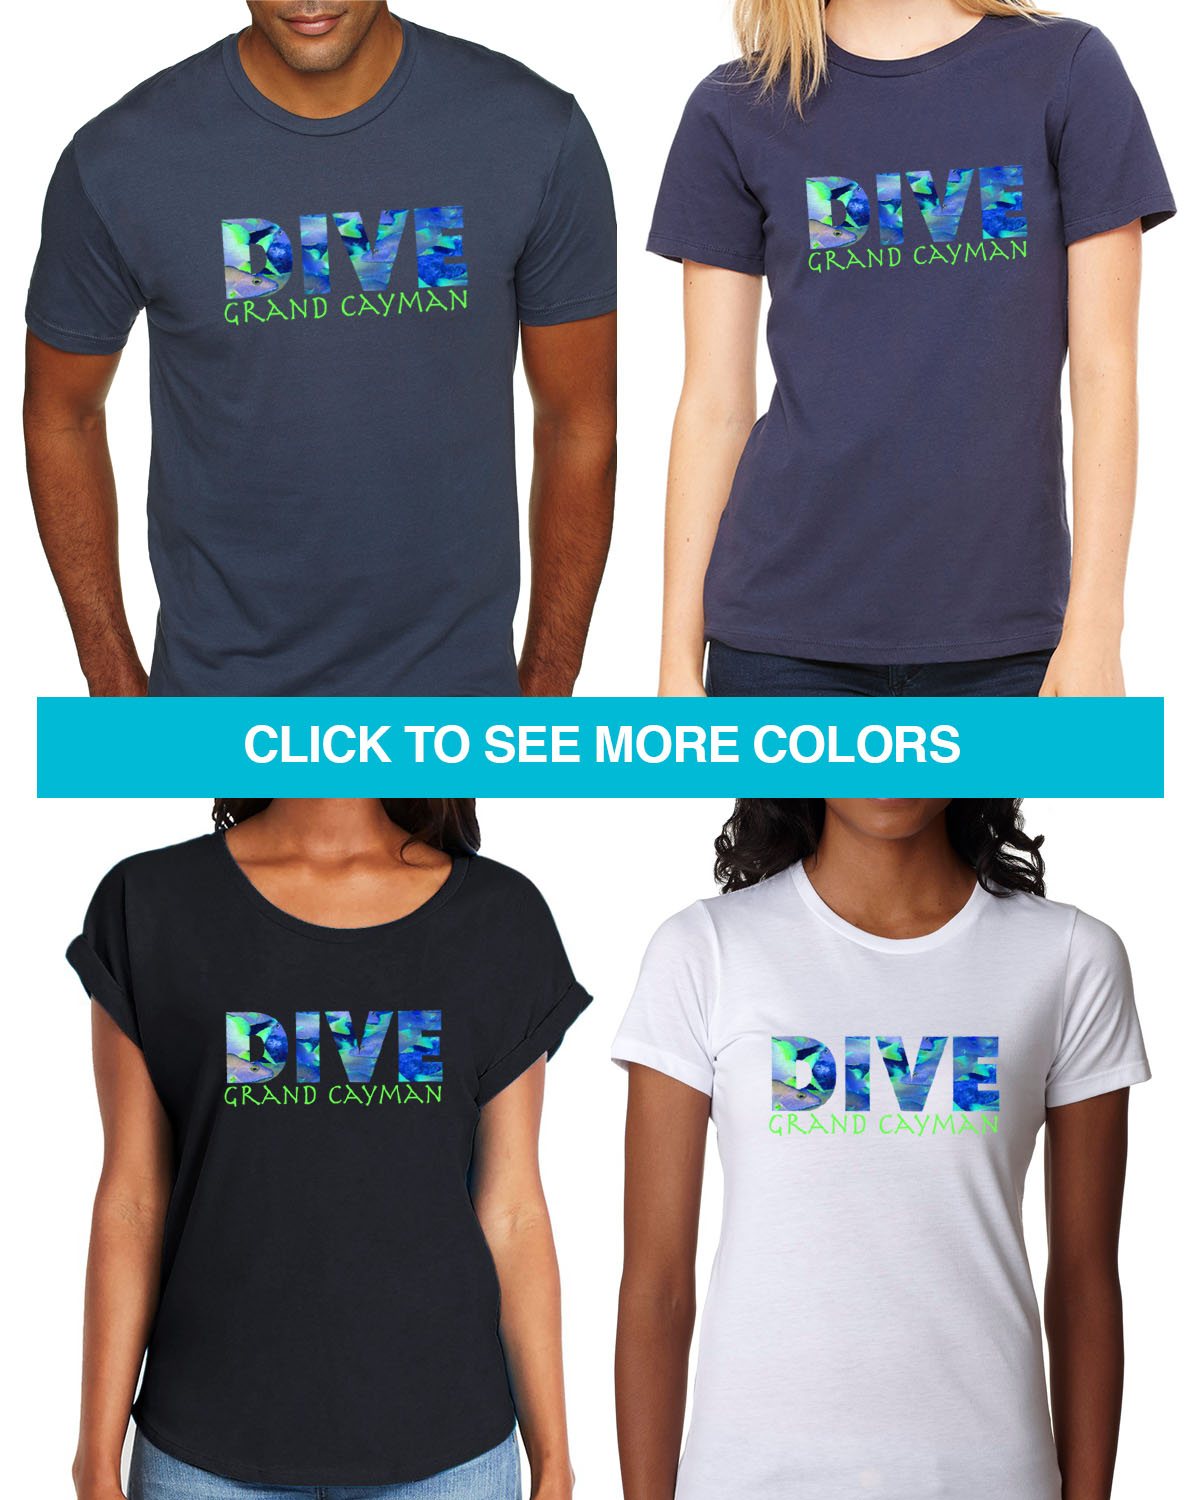 Short sleeve Dive Grand Cayman t-shirt for men and women